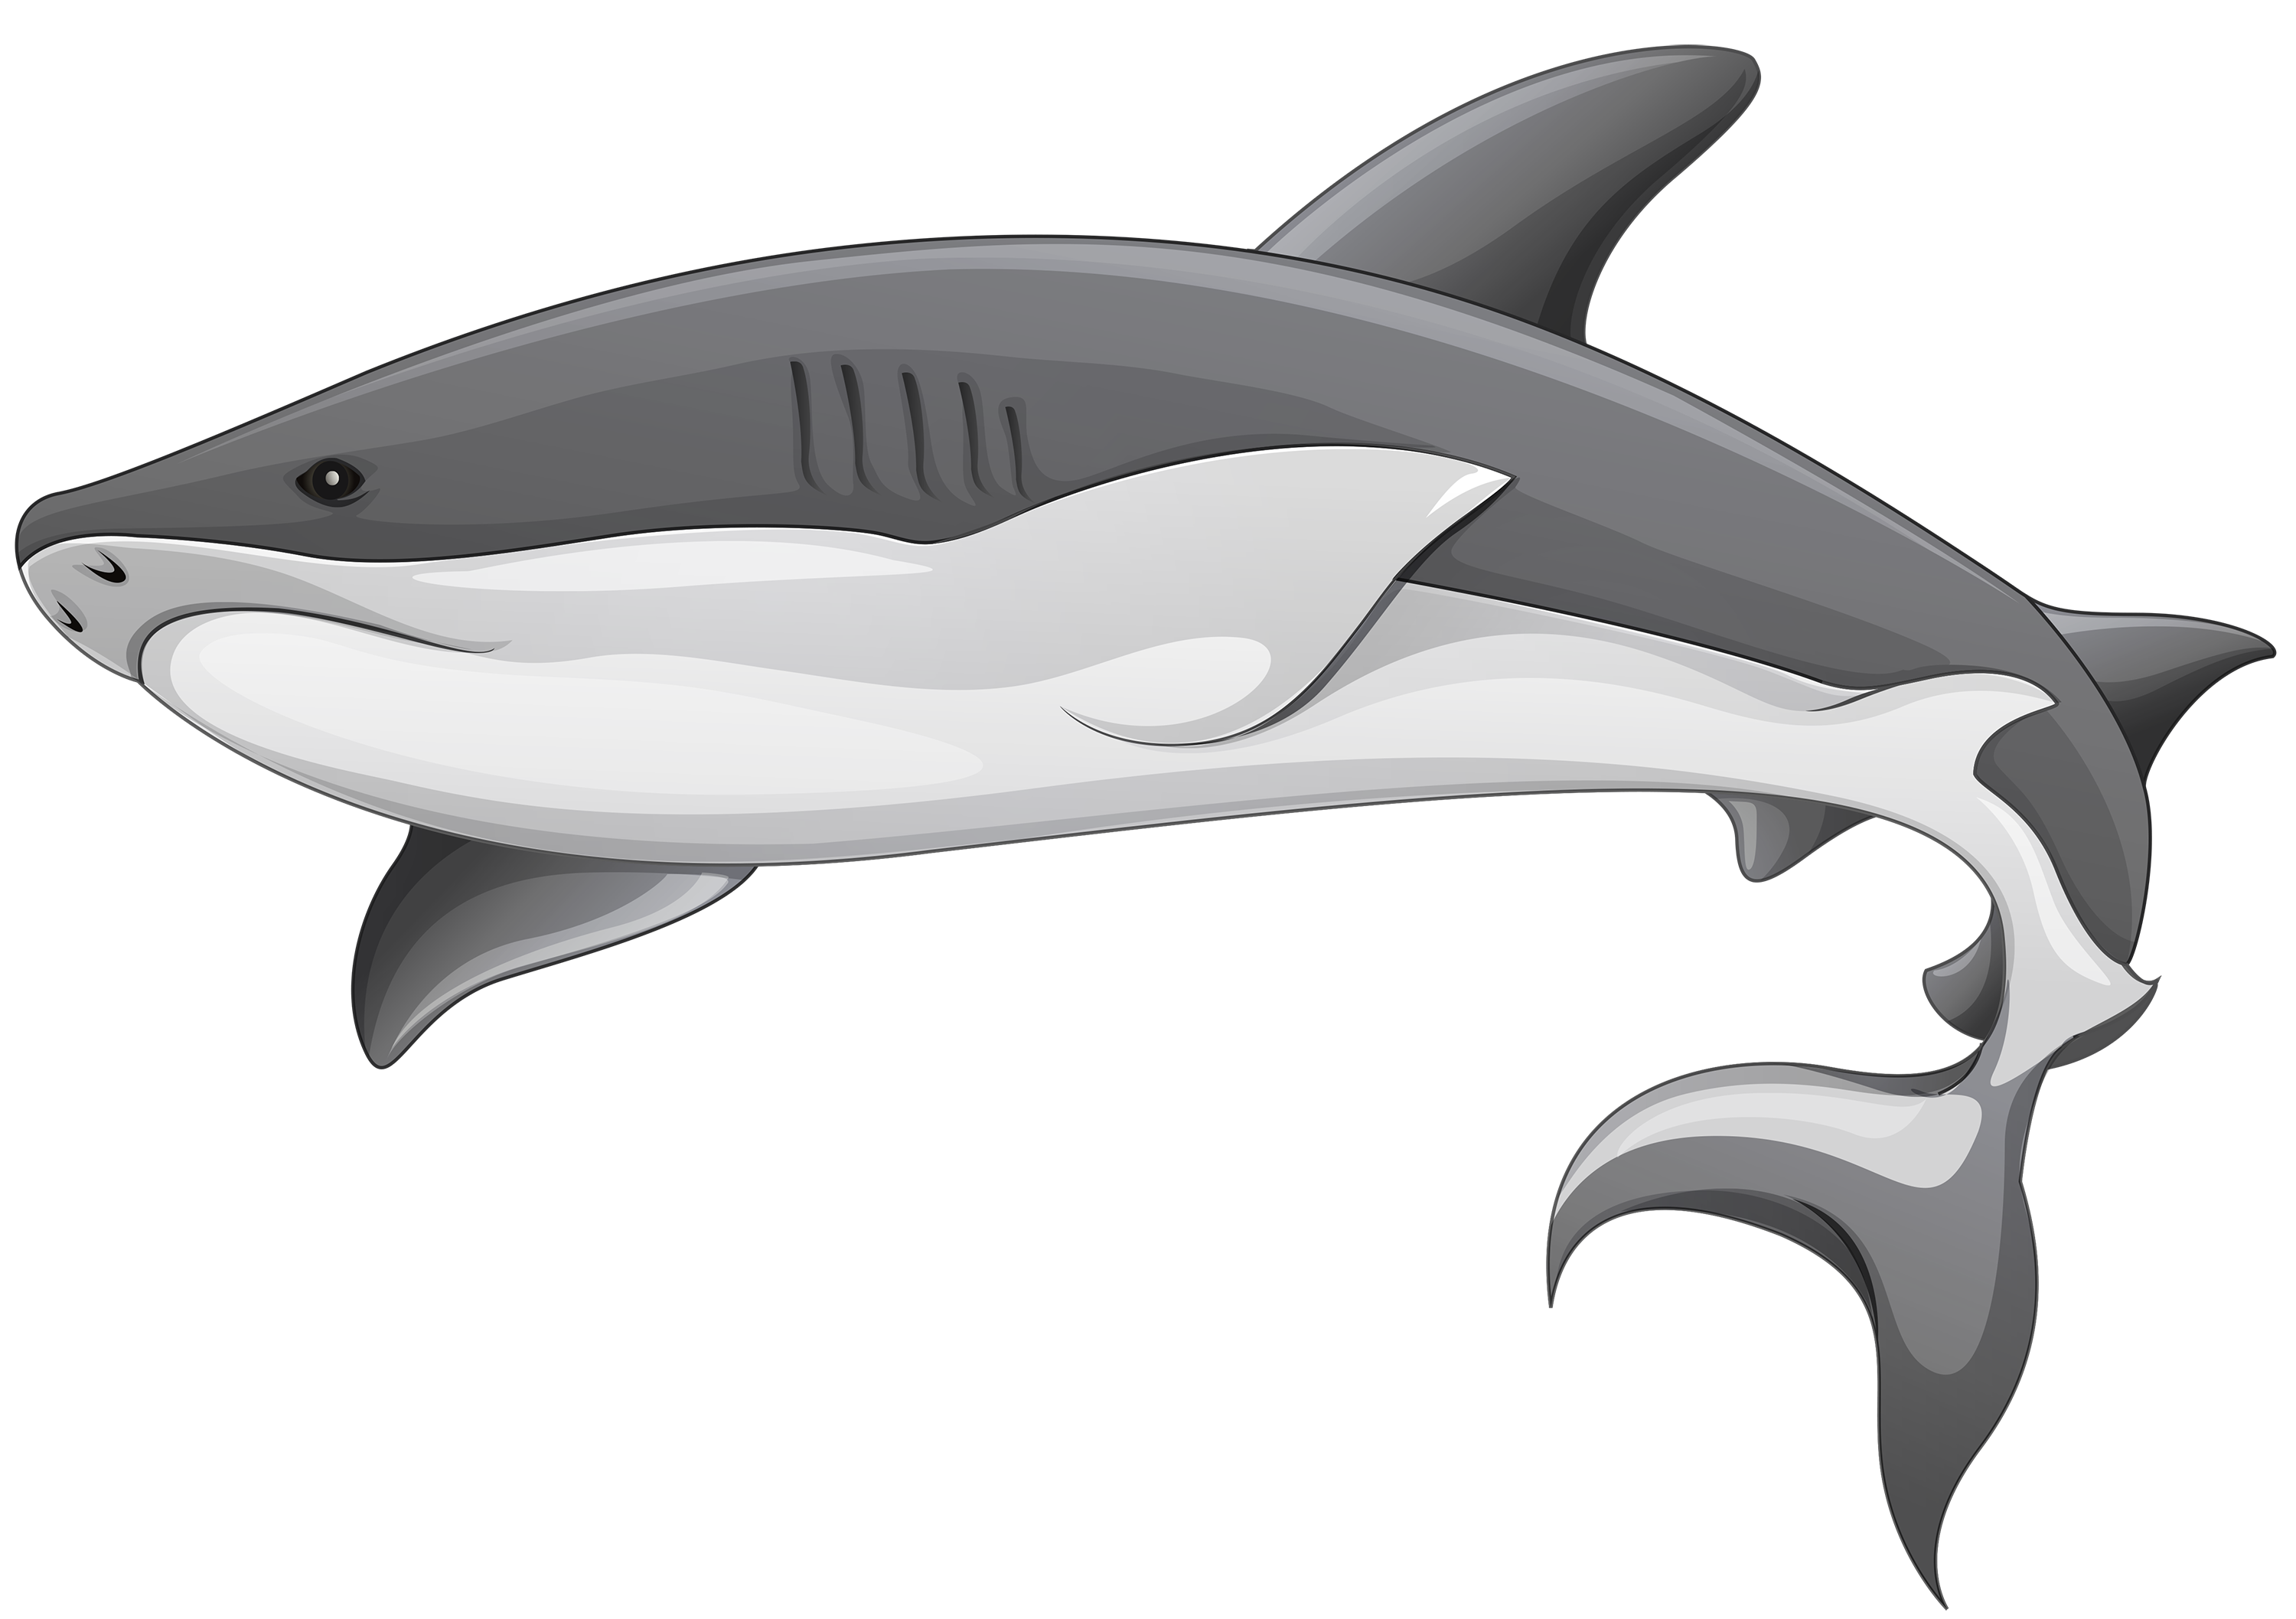 Tiger Shark clipart #15